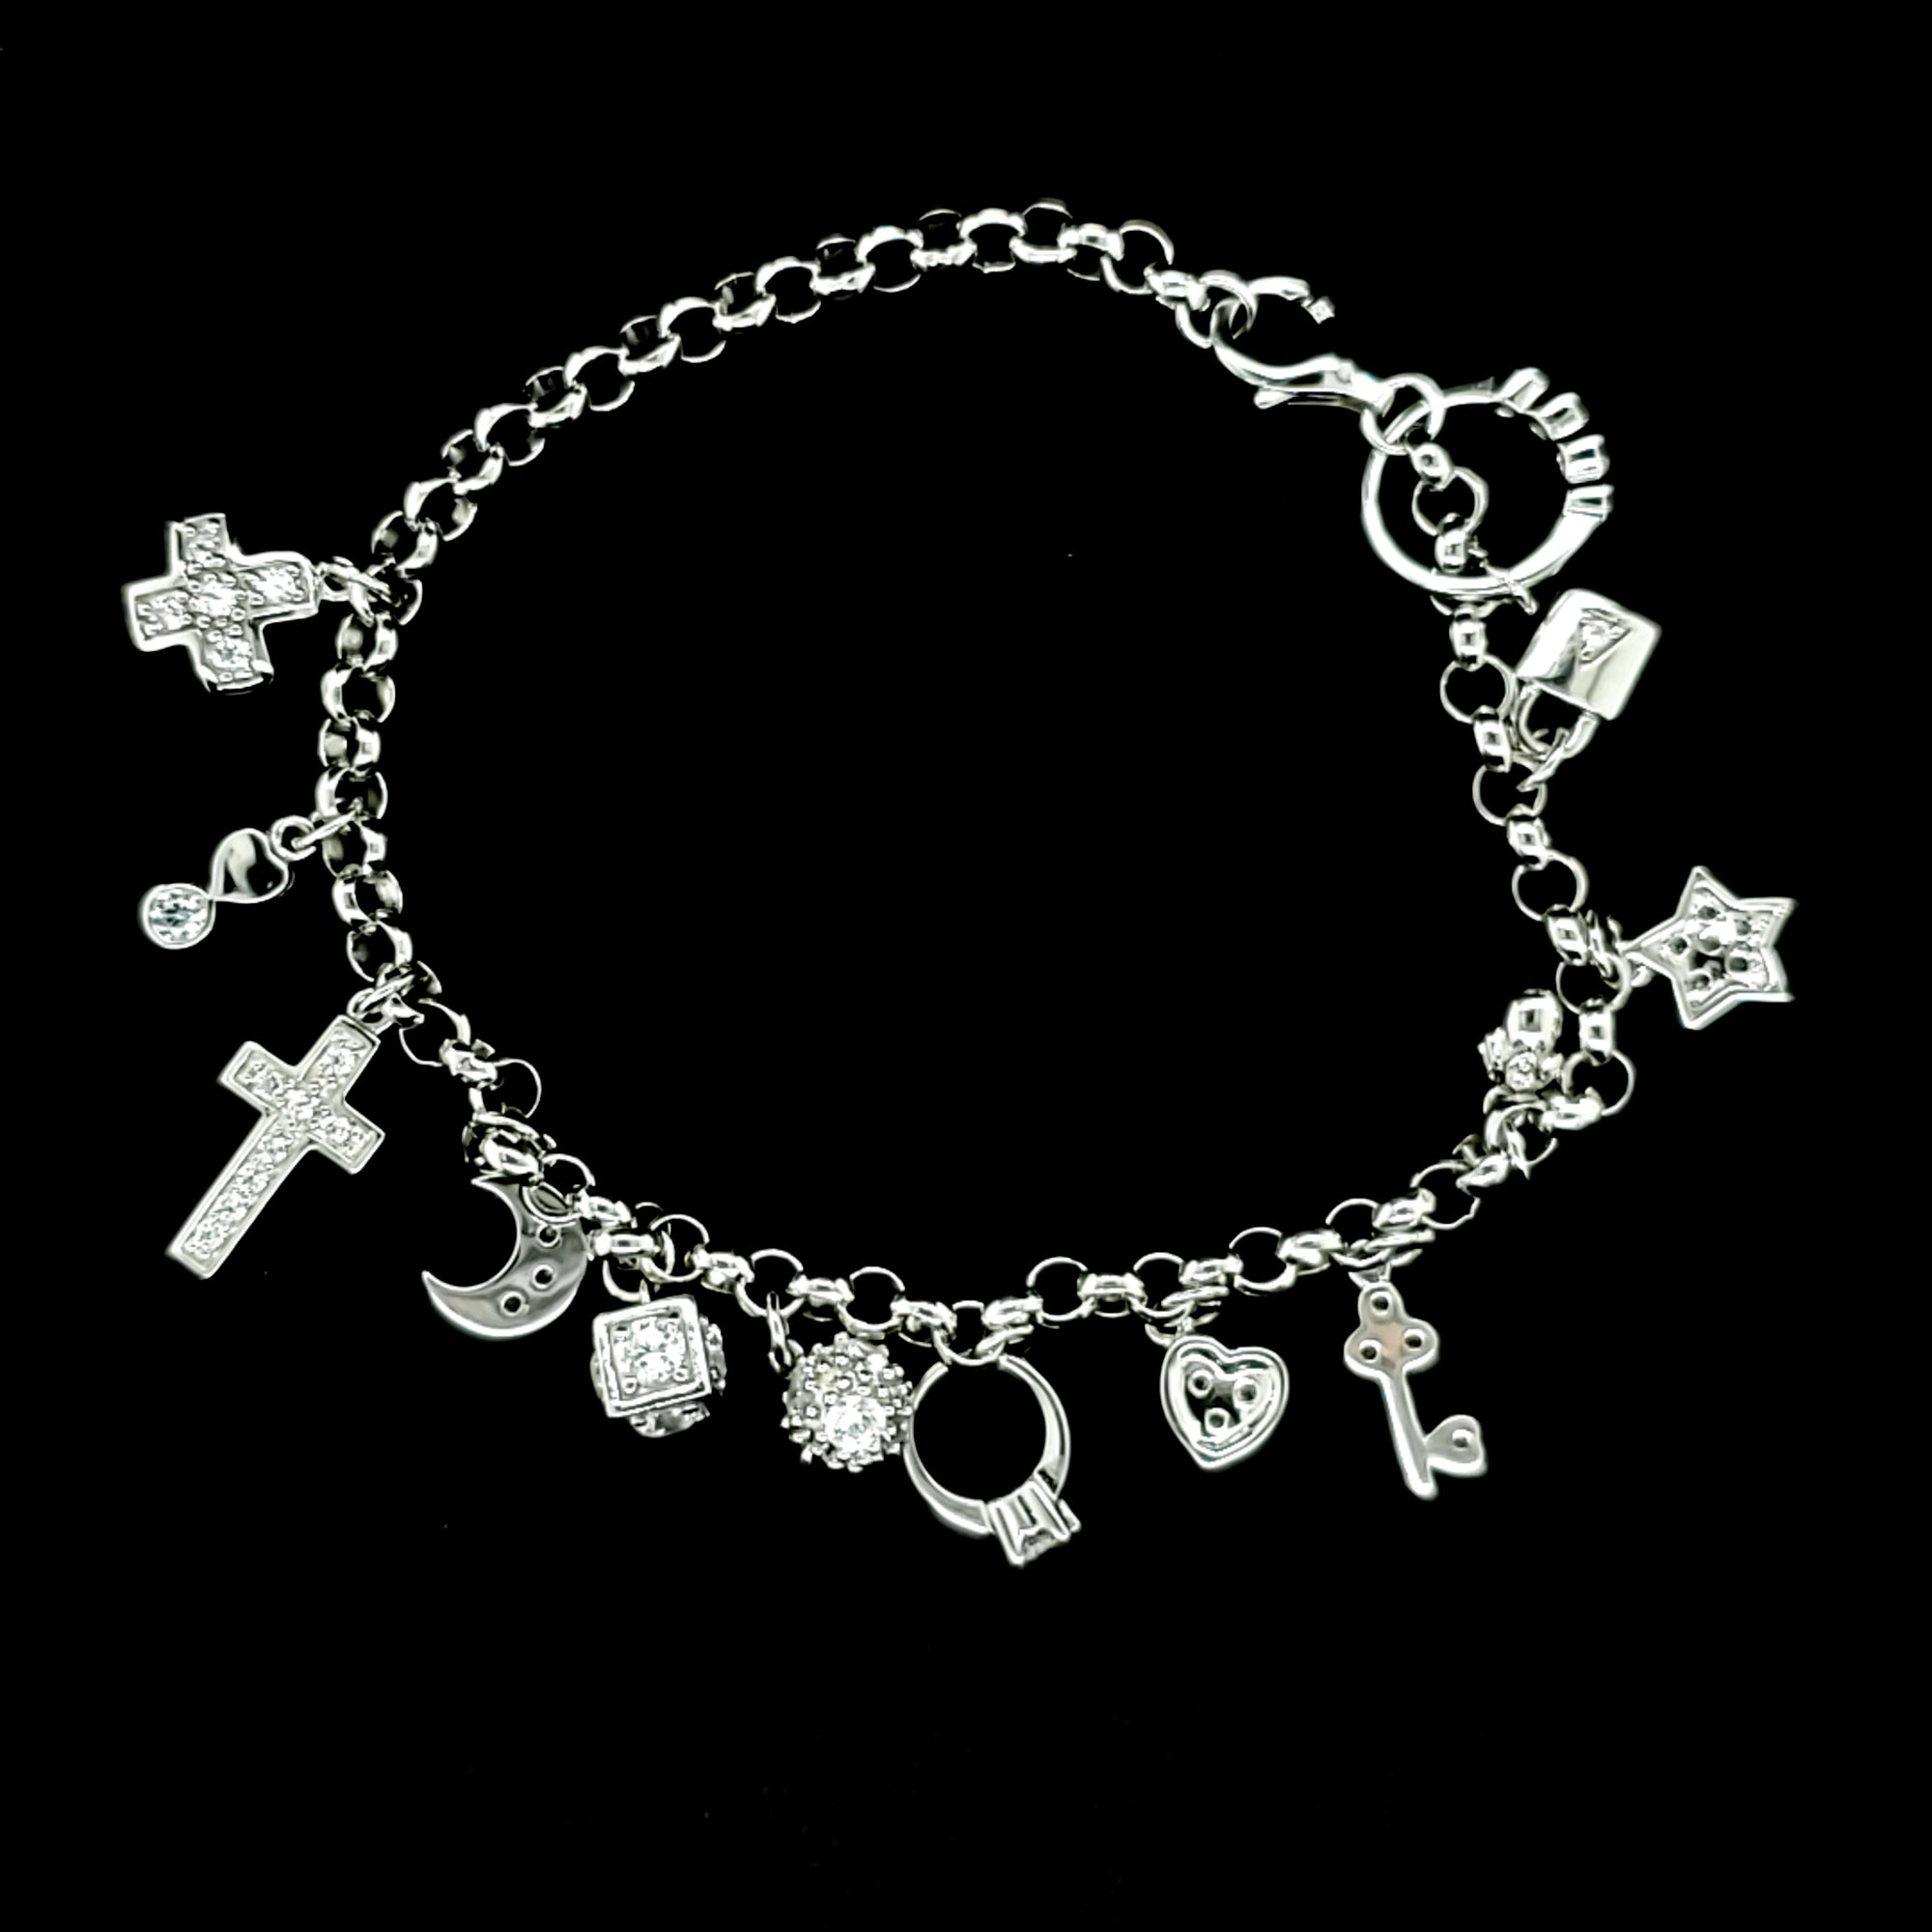 925 Sterling Silver (Made in Italy) Solid Charm Bracelet with 13 pendants for Women-gift for her 8""